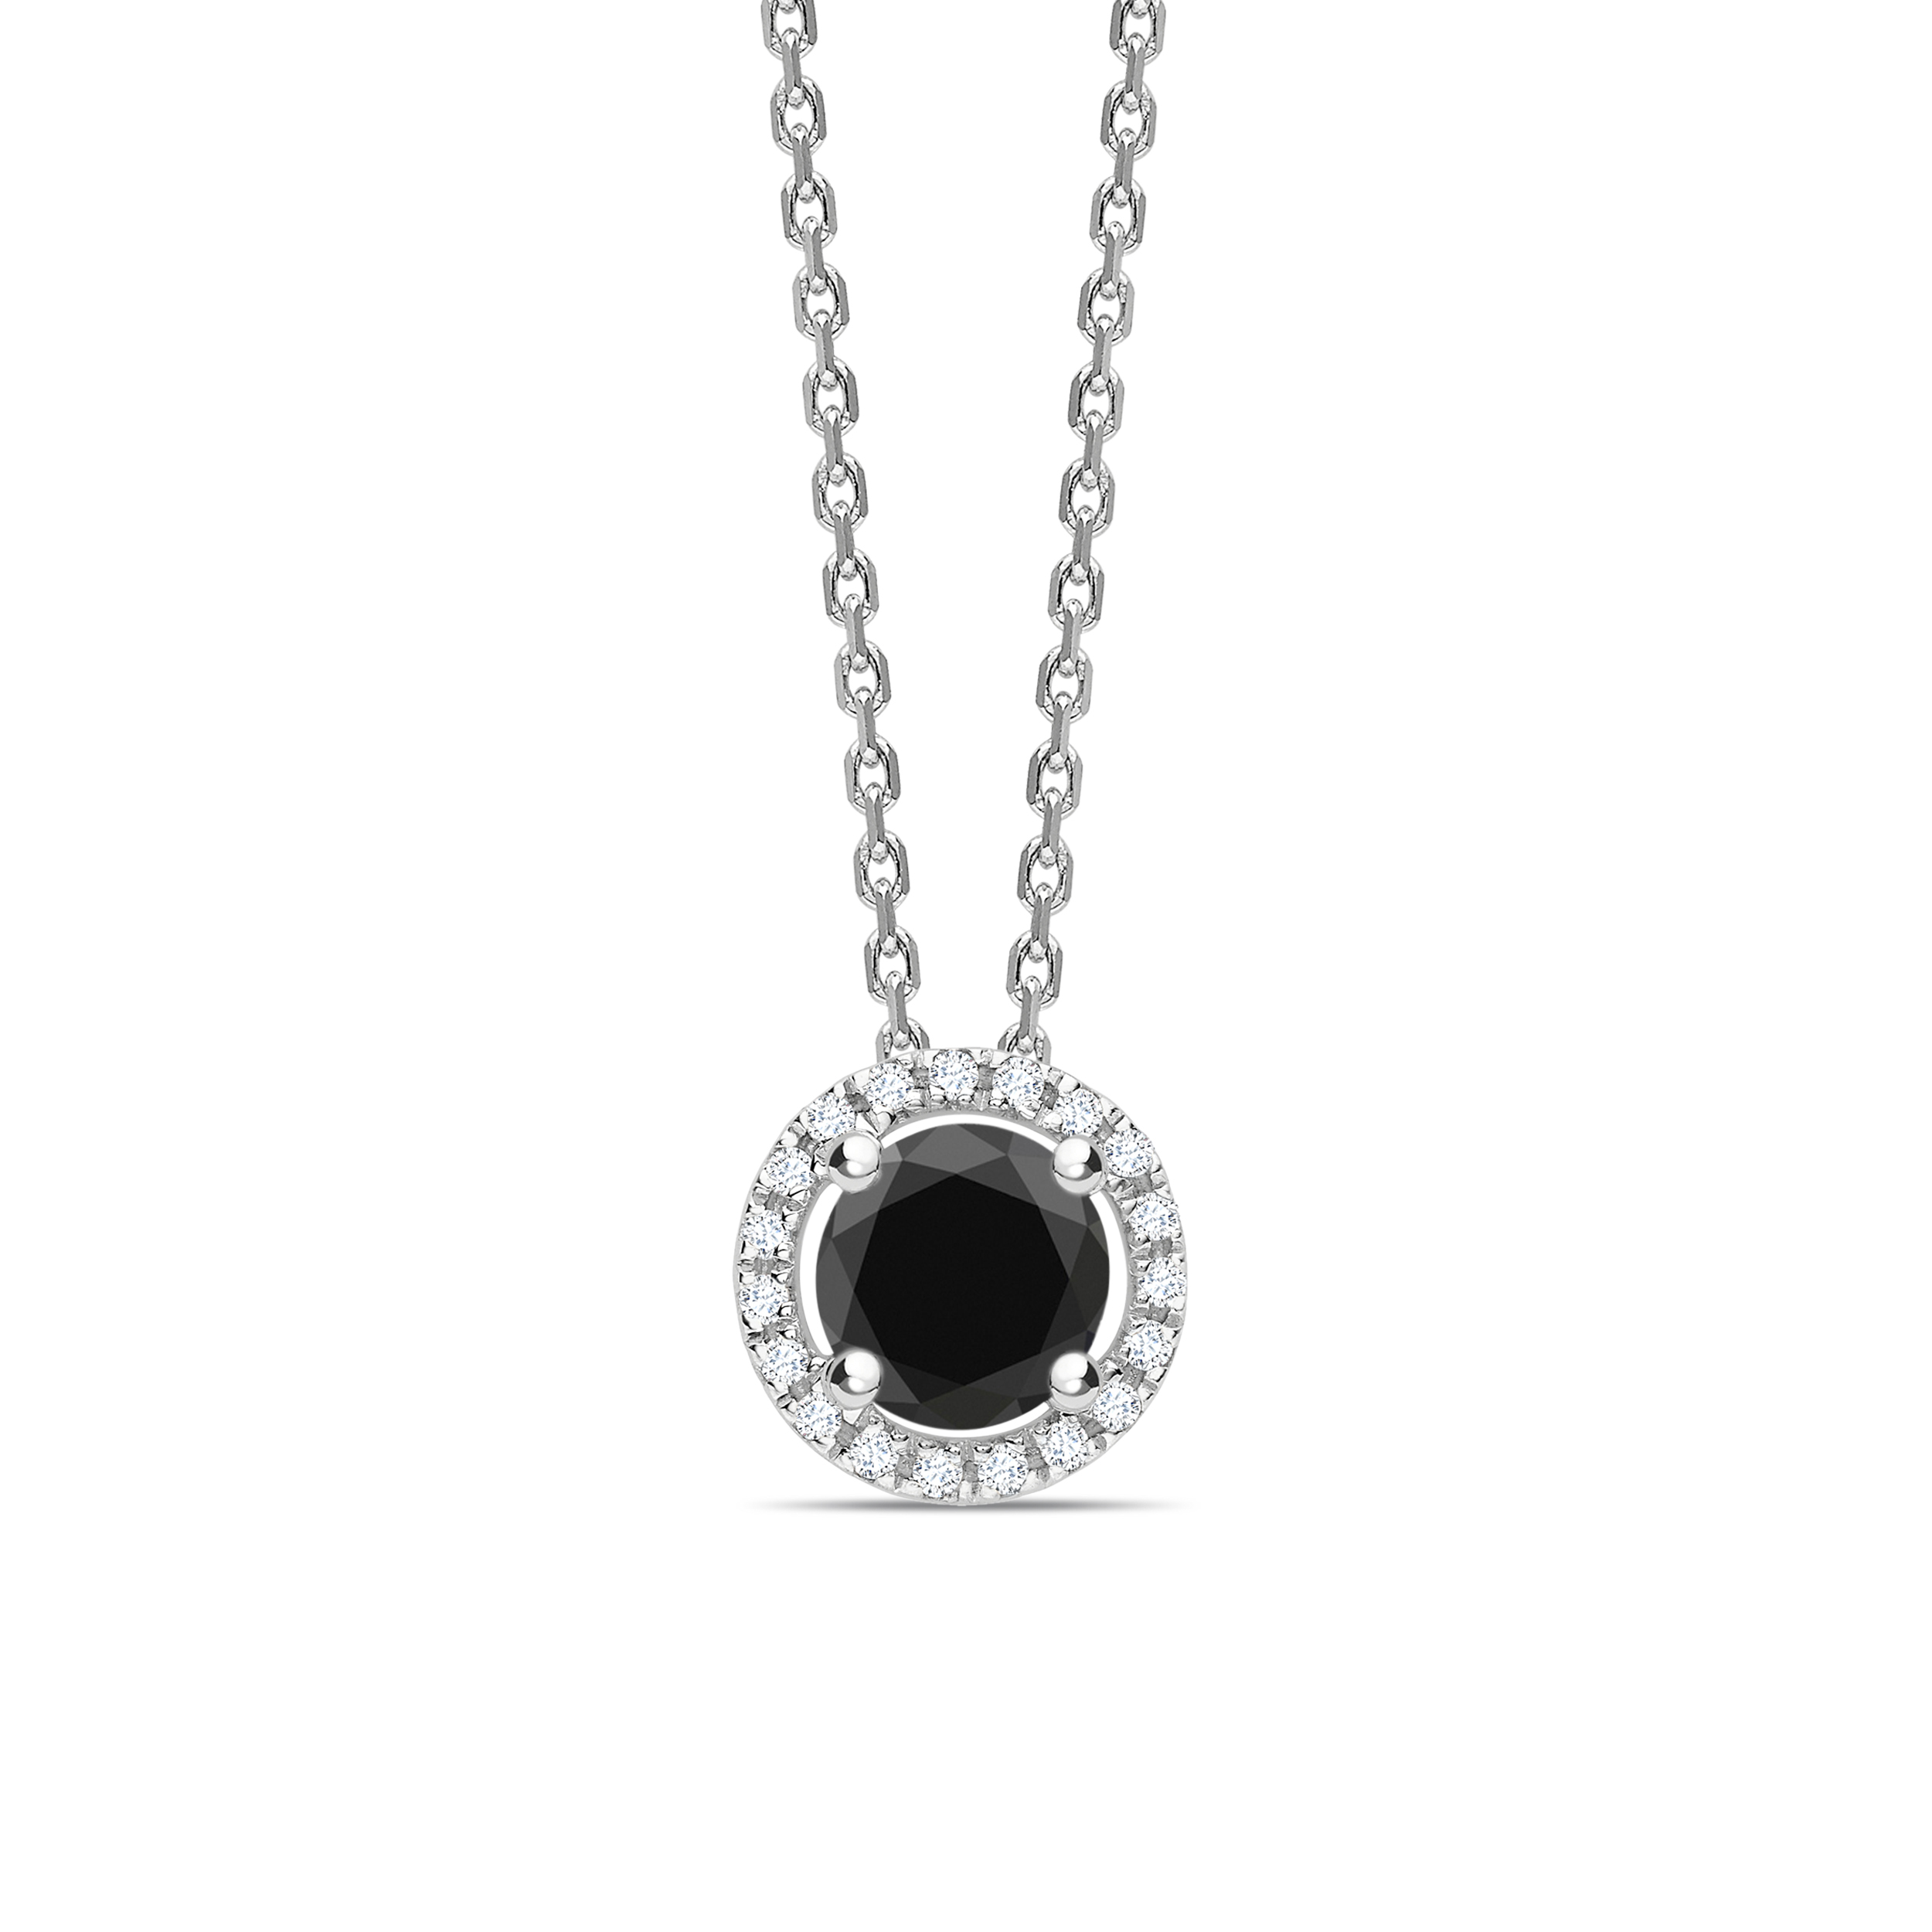 Halo Style Black Diamond Solitaire Pendants Necklace in Round Cut